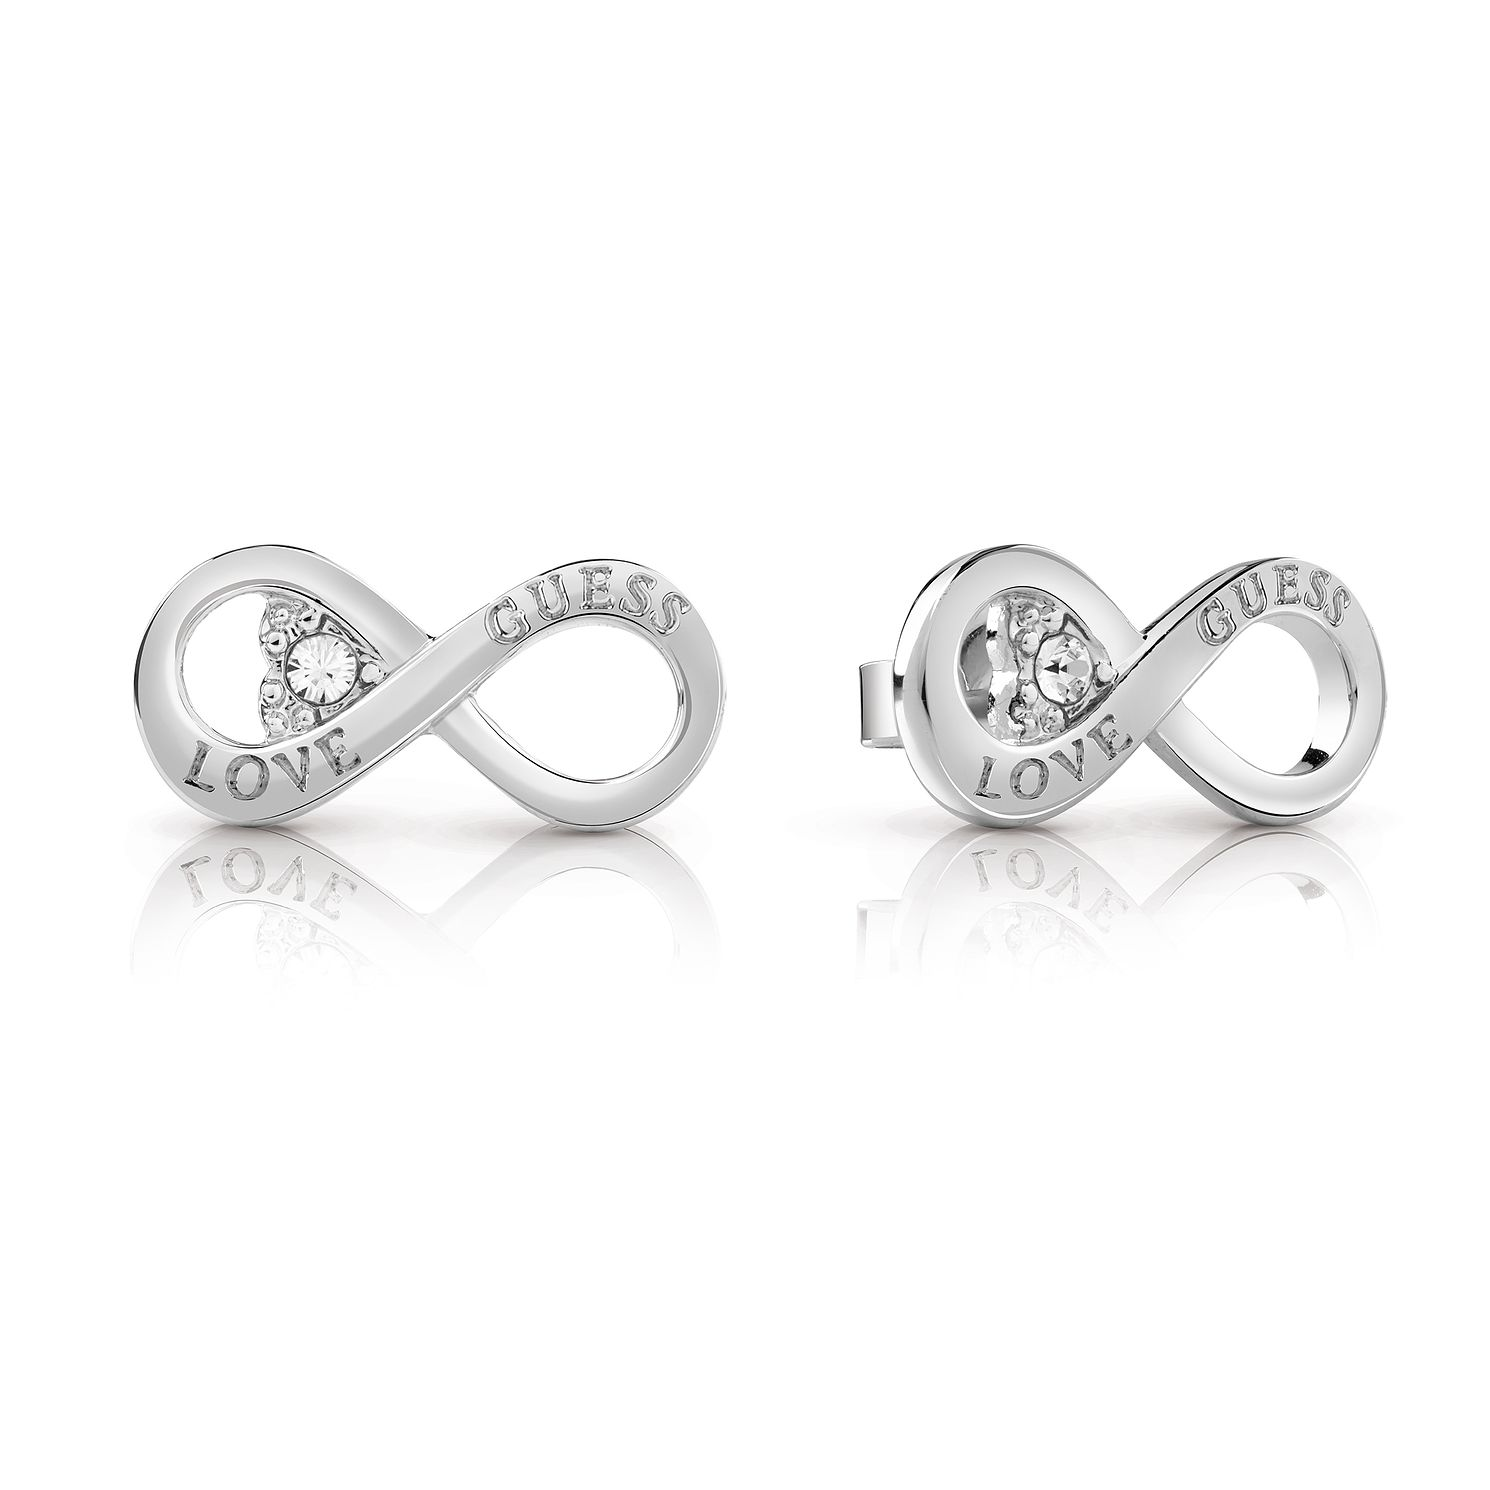 Guess Silver Plated Rhodium Infinity Heart Stud Earrings - Product number 4066766